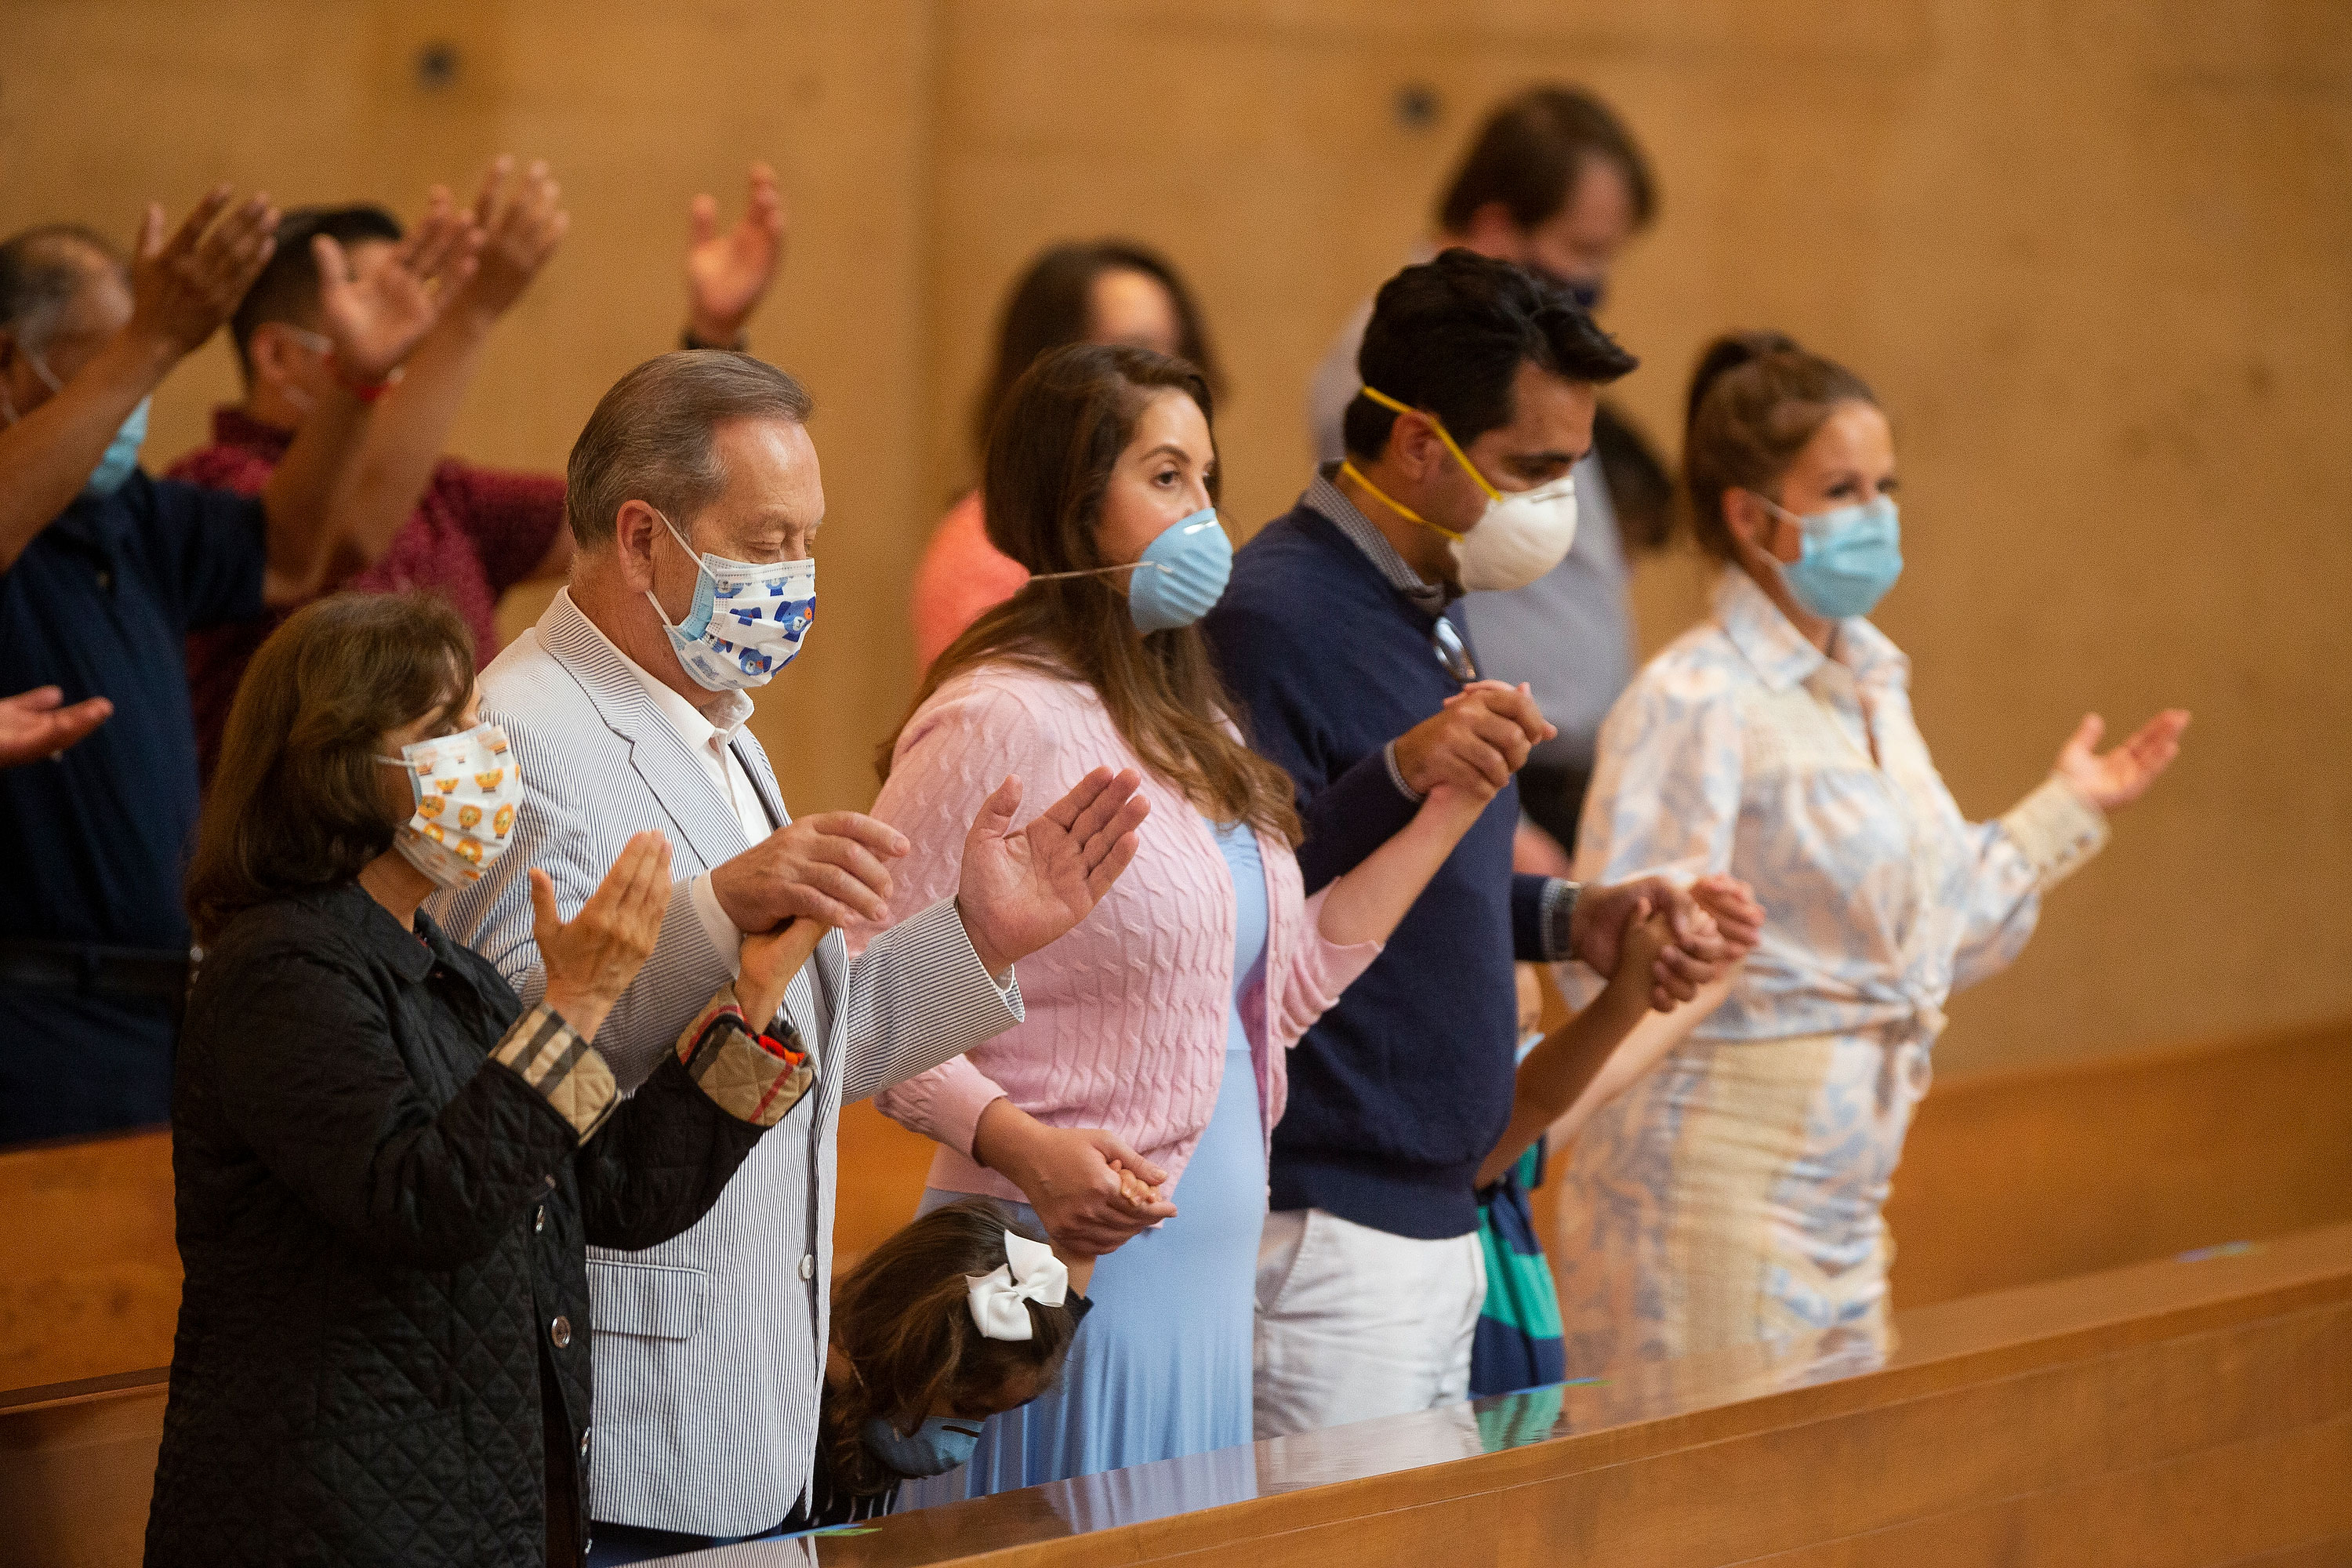 With a worsening pandemic, California bans singing in places of worship